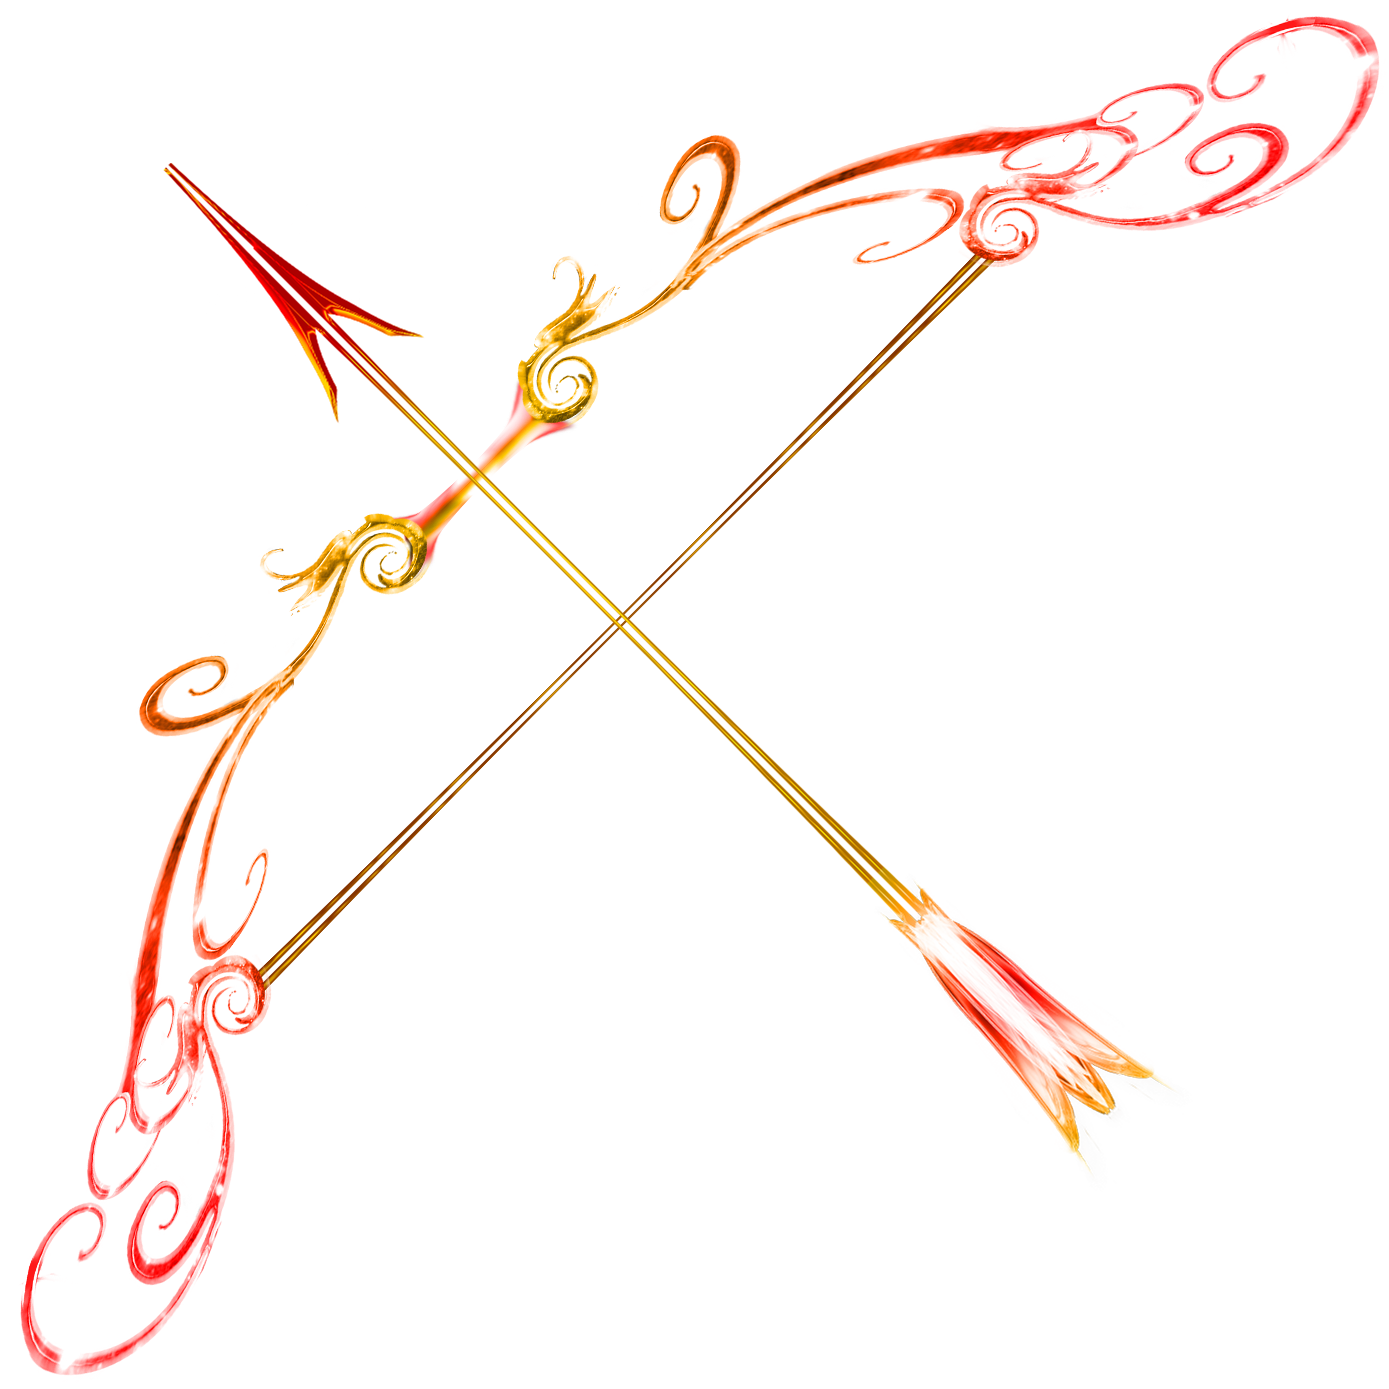 Pictures Of Bows And Arrows - ClipArt Best